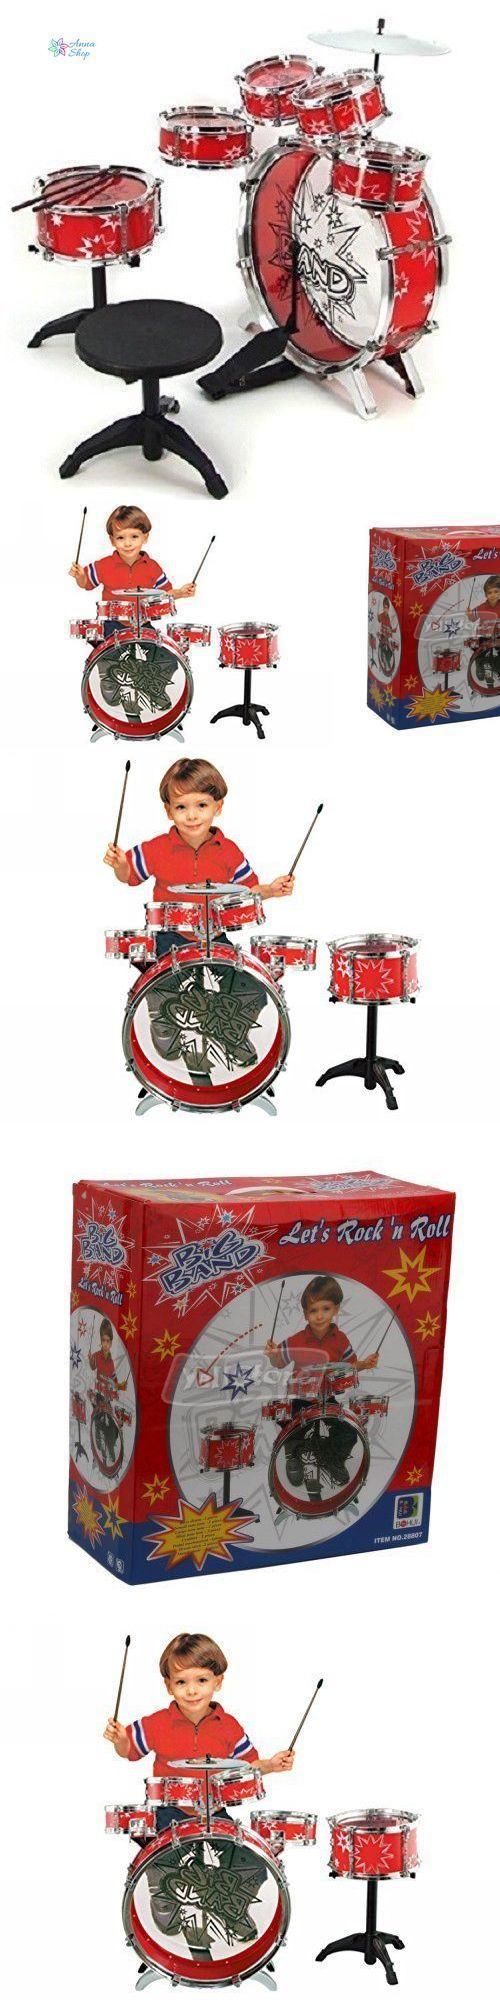 Music and Art 11735: 11 Pc Kids Drum Set Boy Girl Musical Instrument Toy Playset Starter Kit Gift Red -> BUY IT NOW ONLY: $43.98 on eBay!